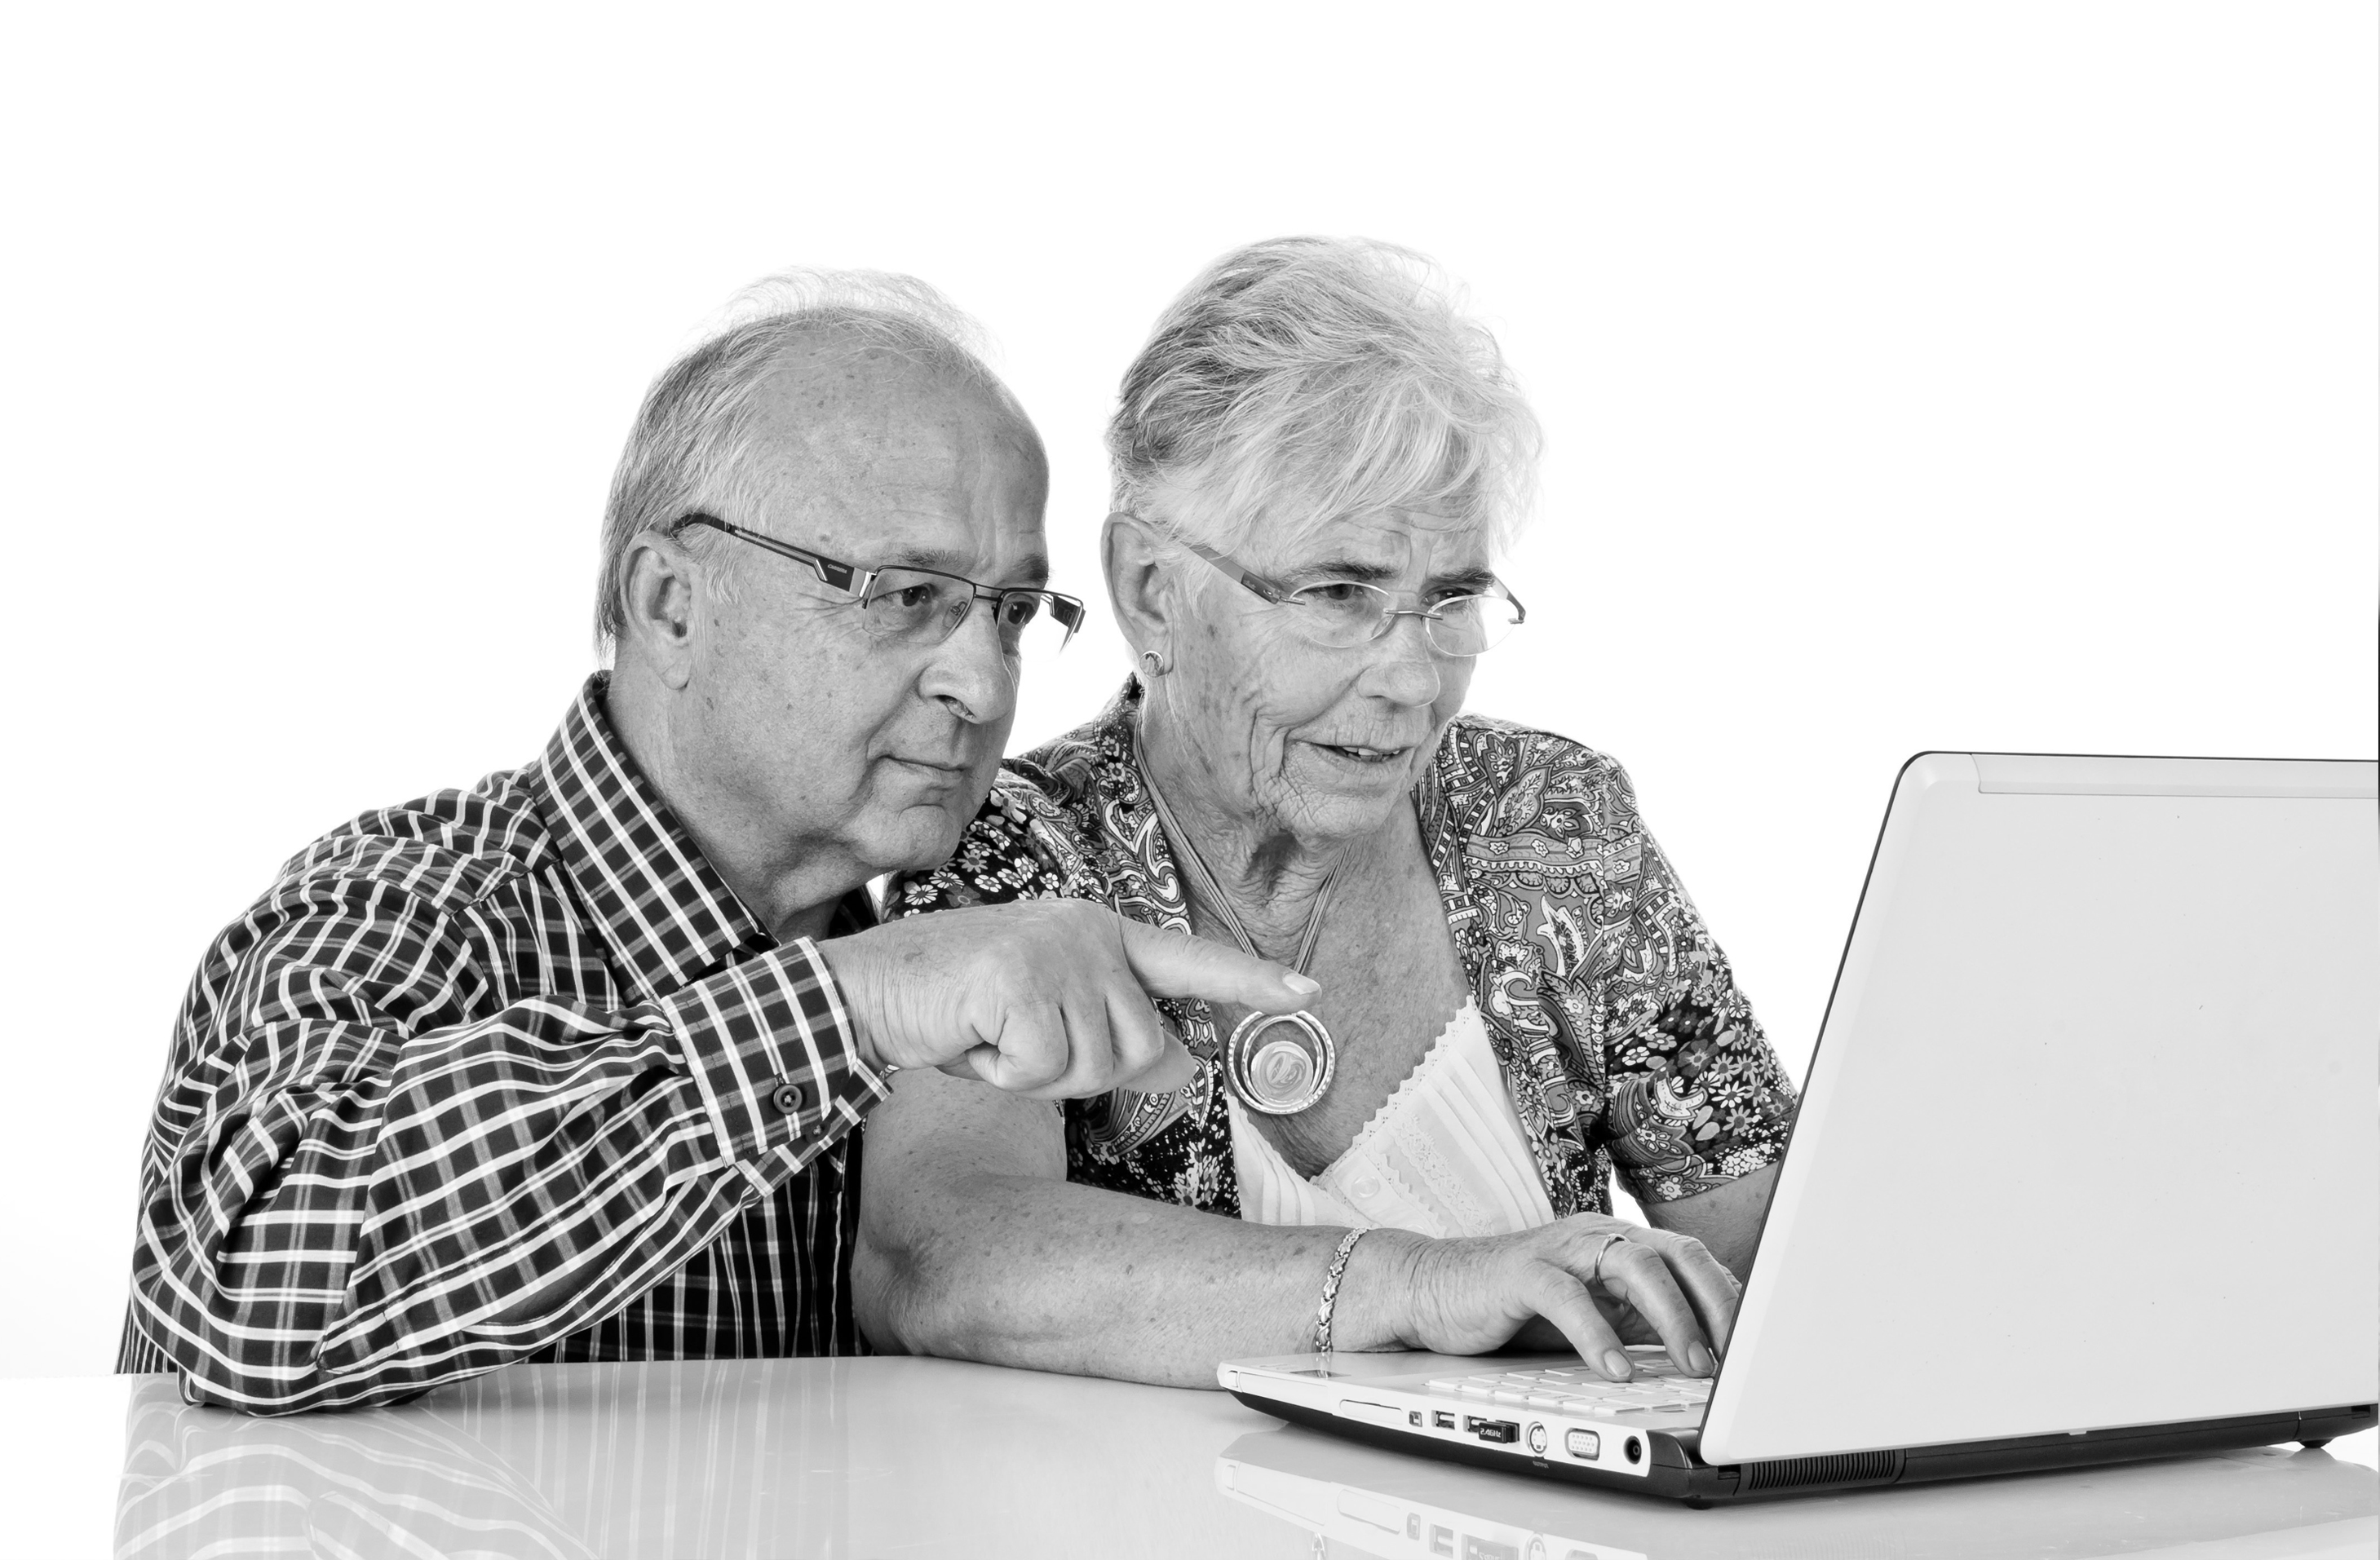 Elderly Using Facebook Iphones And Using Facebook